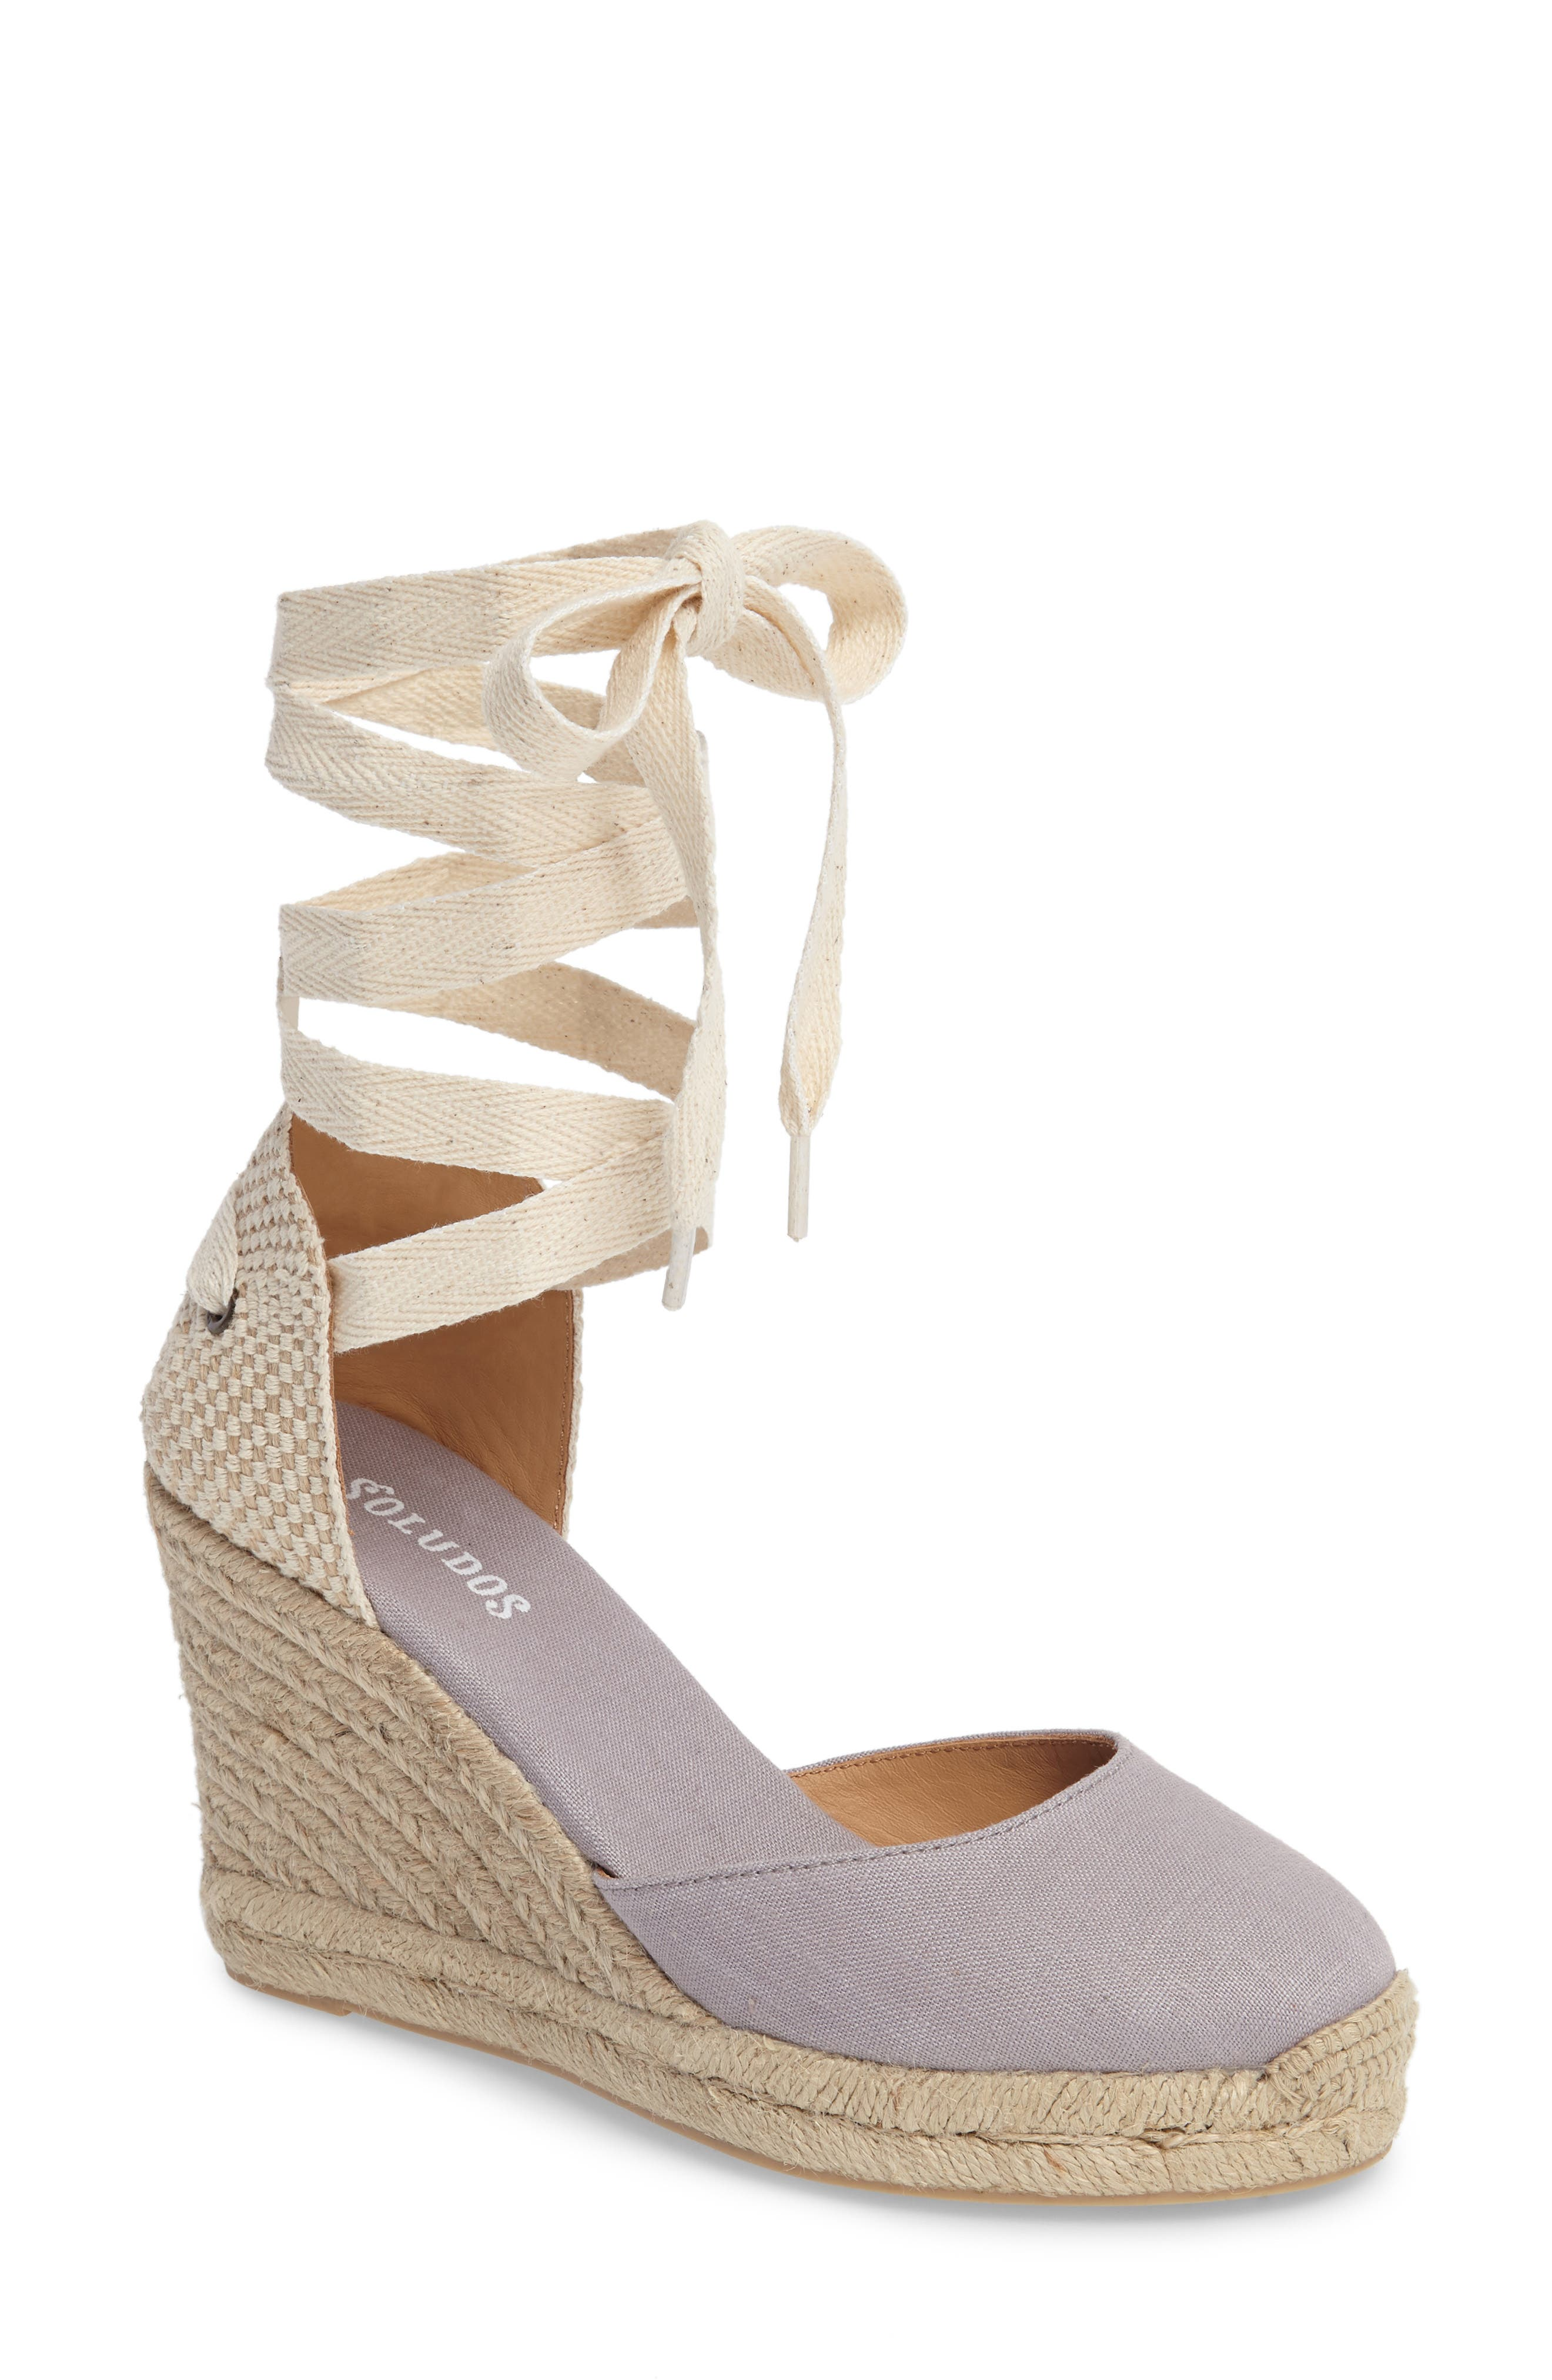 Main Image - Soludos Tall Wedge Espadrille (Women)